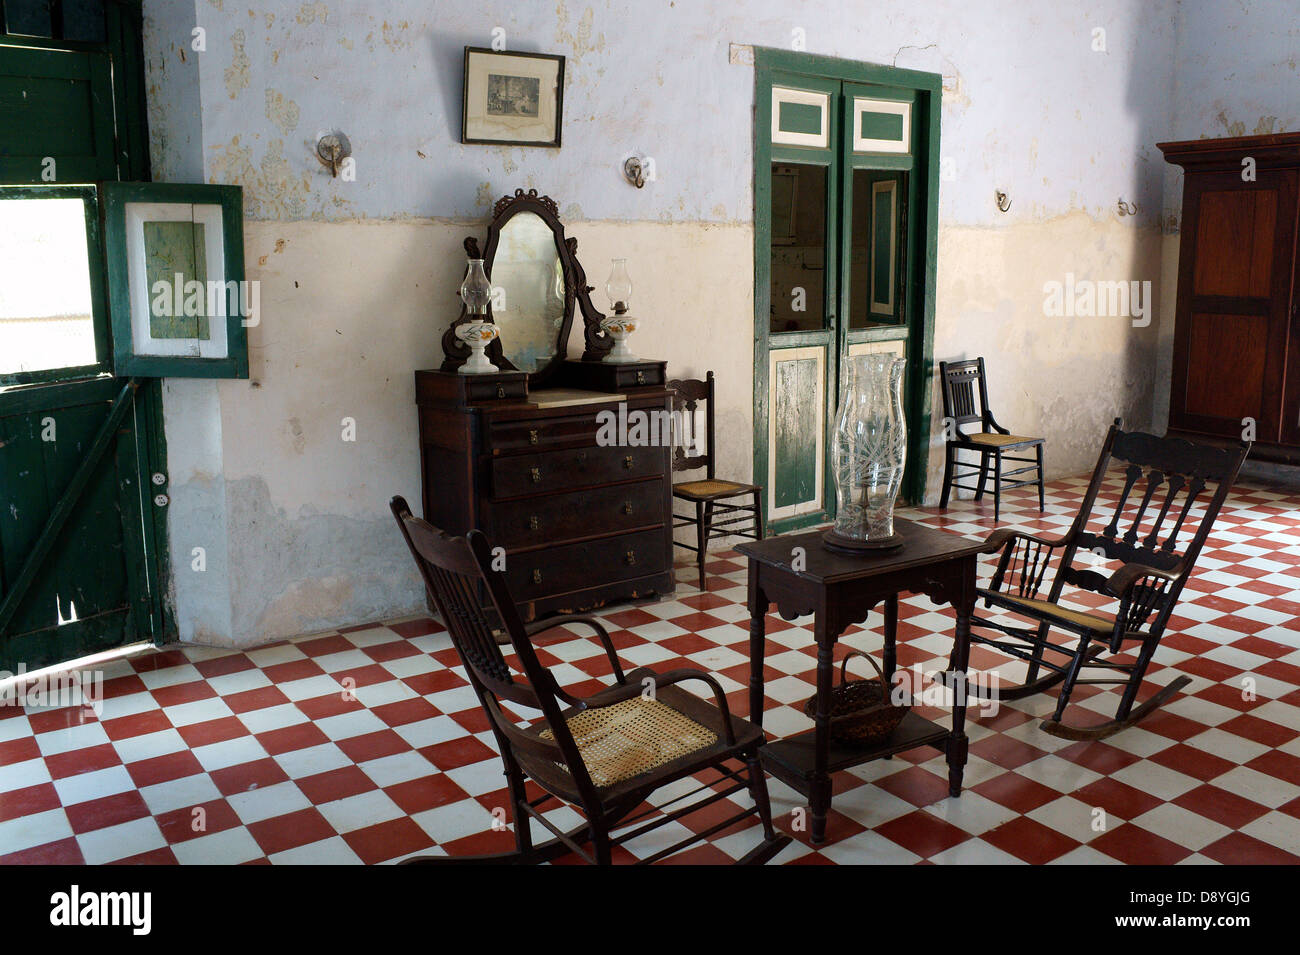 Room with colonial antique furniture in the main building at Hacienda Yaxcopoil, Yucatan, Mexico Stock Photo